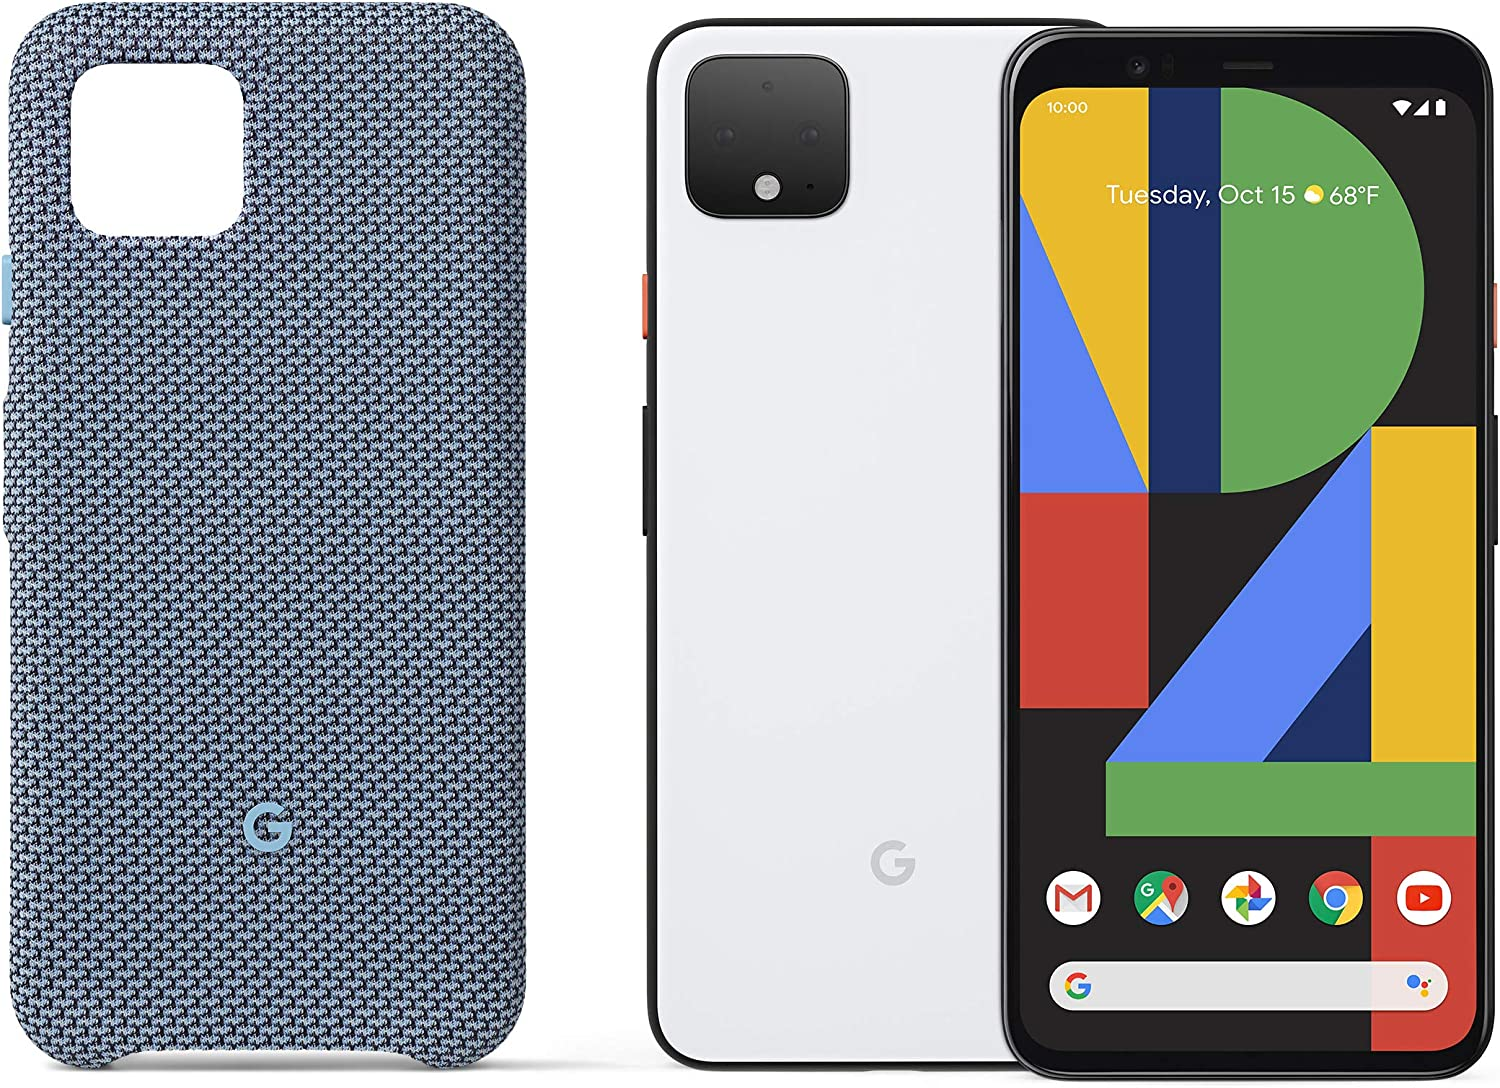 Pixel 4 - Clearly White - 64GB - Unlocked with Pixel 4 Case, Blue-ish